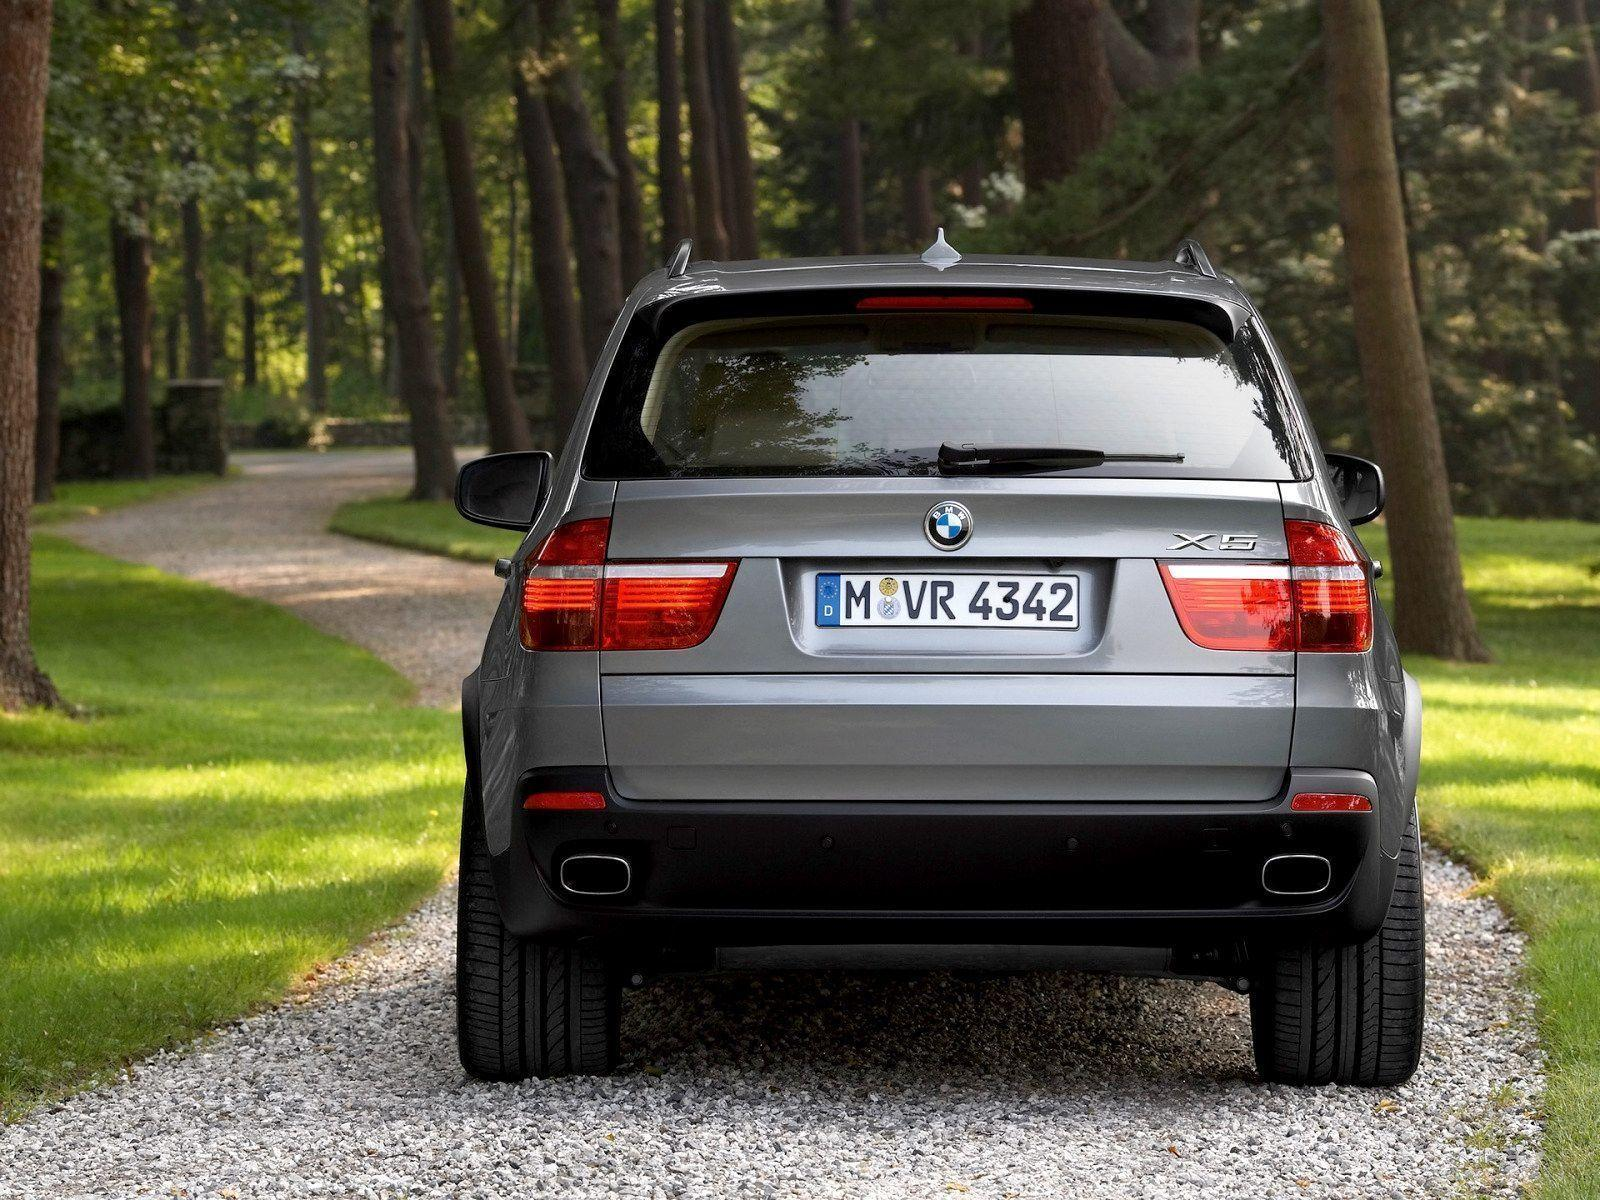 2007 BMW X5 Wallpaper 07 - 1600x1200